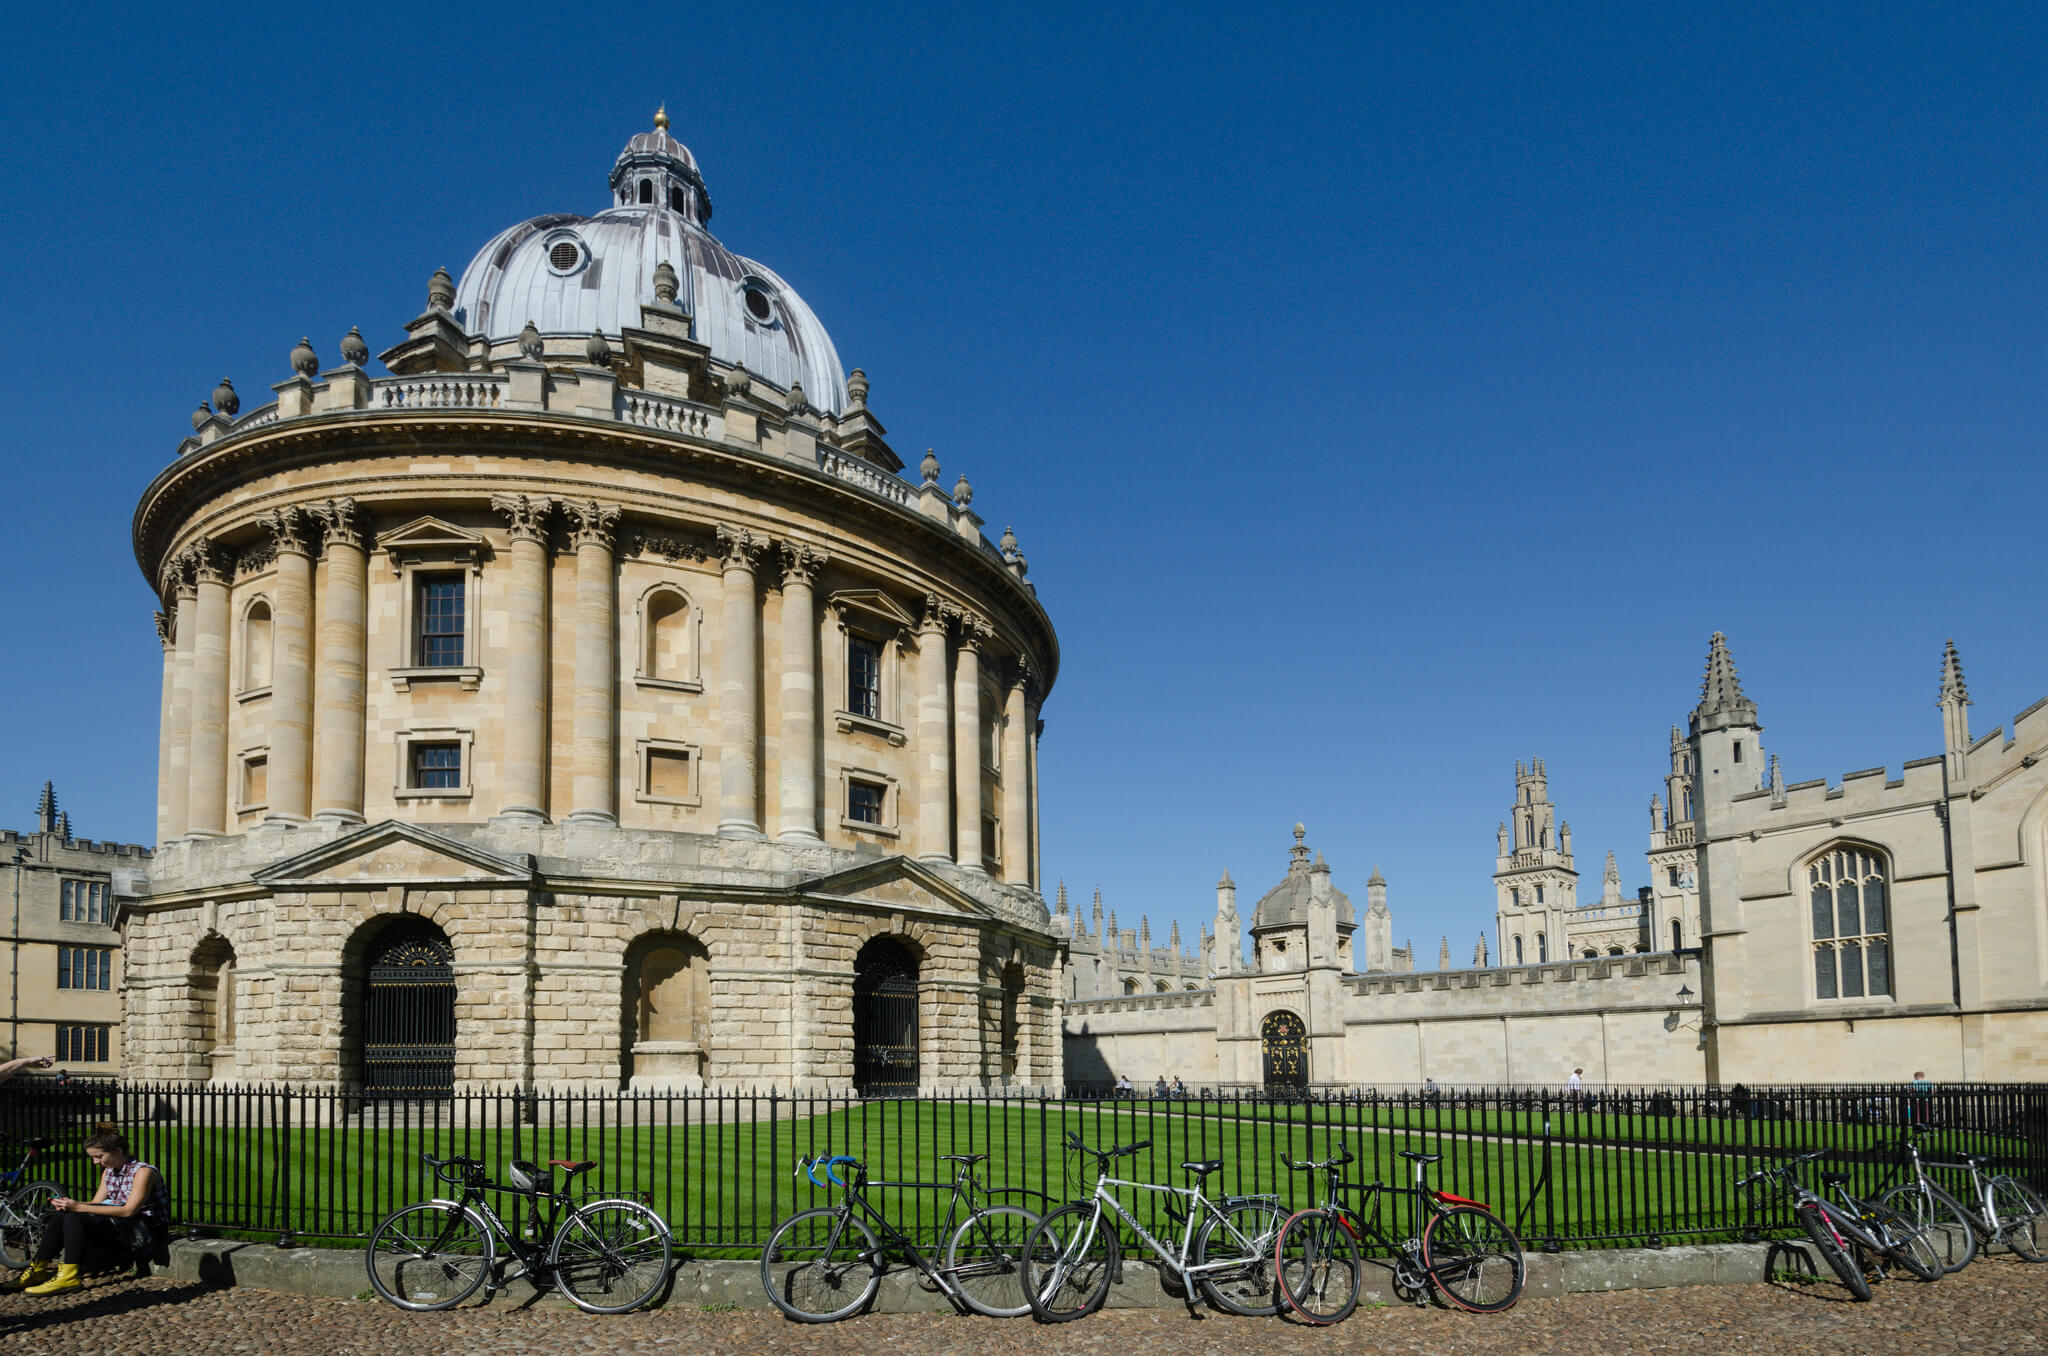 University of Oxford. Photo by xiquinhosilva (CC BY 2.0)